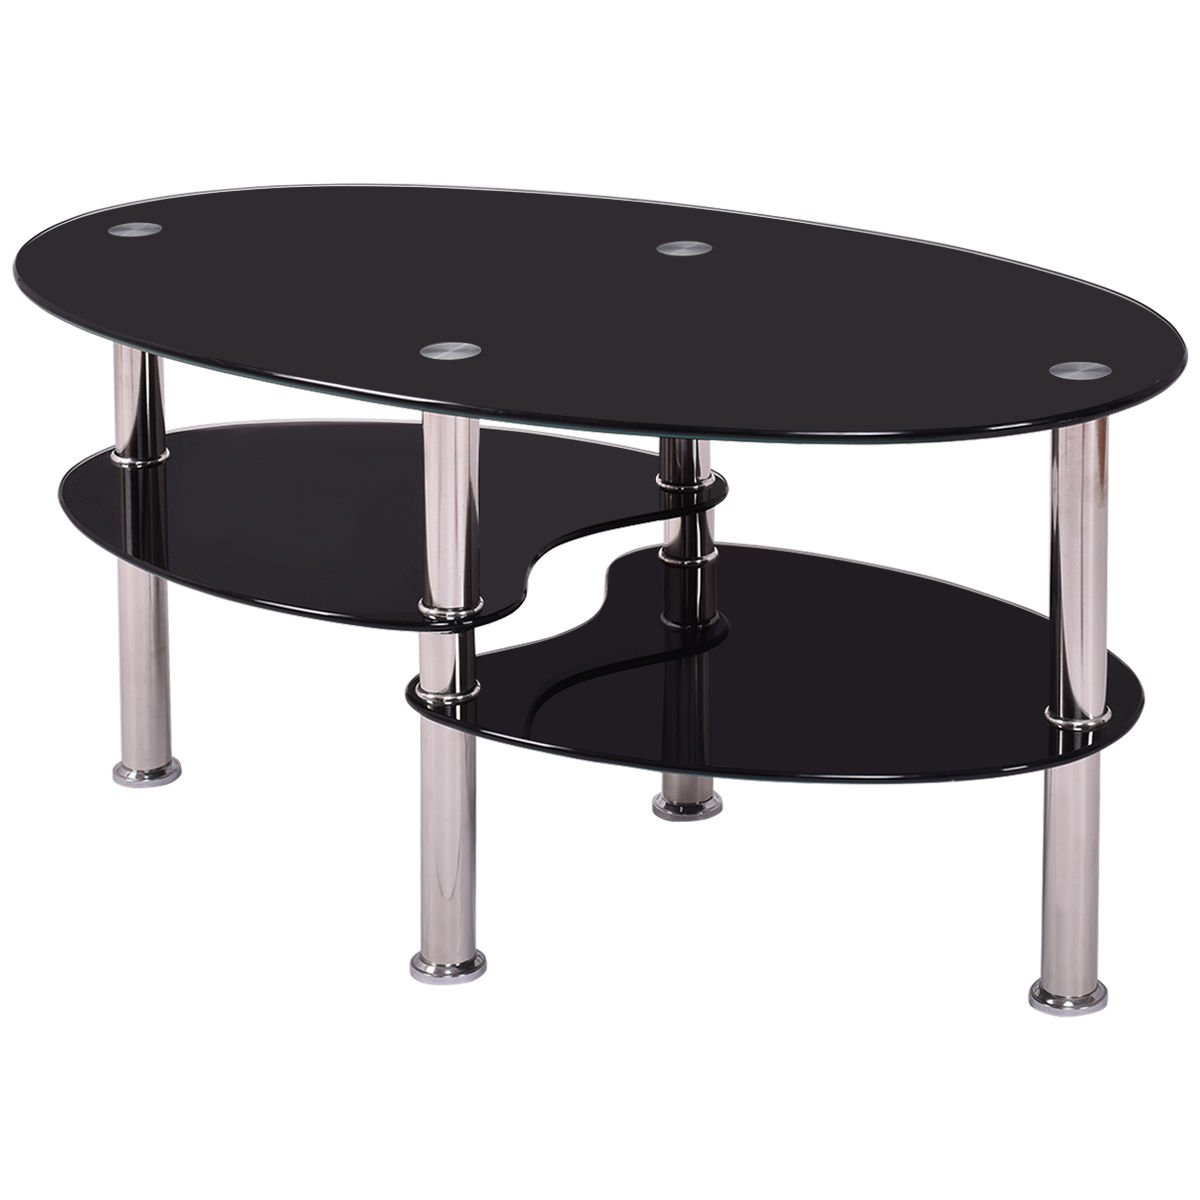 TANGKULA Glass Coffee Table 2-Tire Modern Oval Smooth Glass Tea Table End Table for Home Office with 2 Tire Tempered Glass Boards & Sturdy Chrome Plated Legs